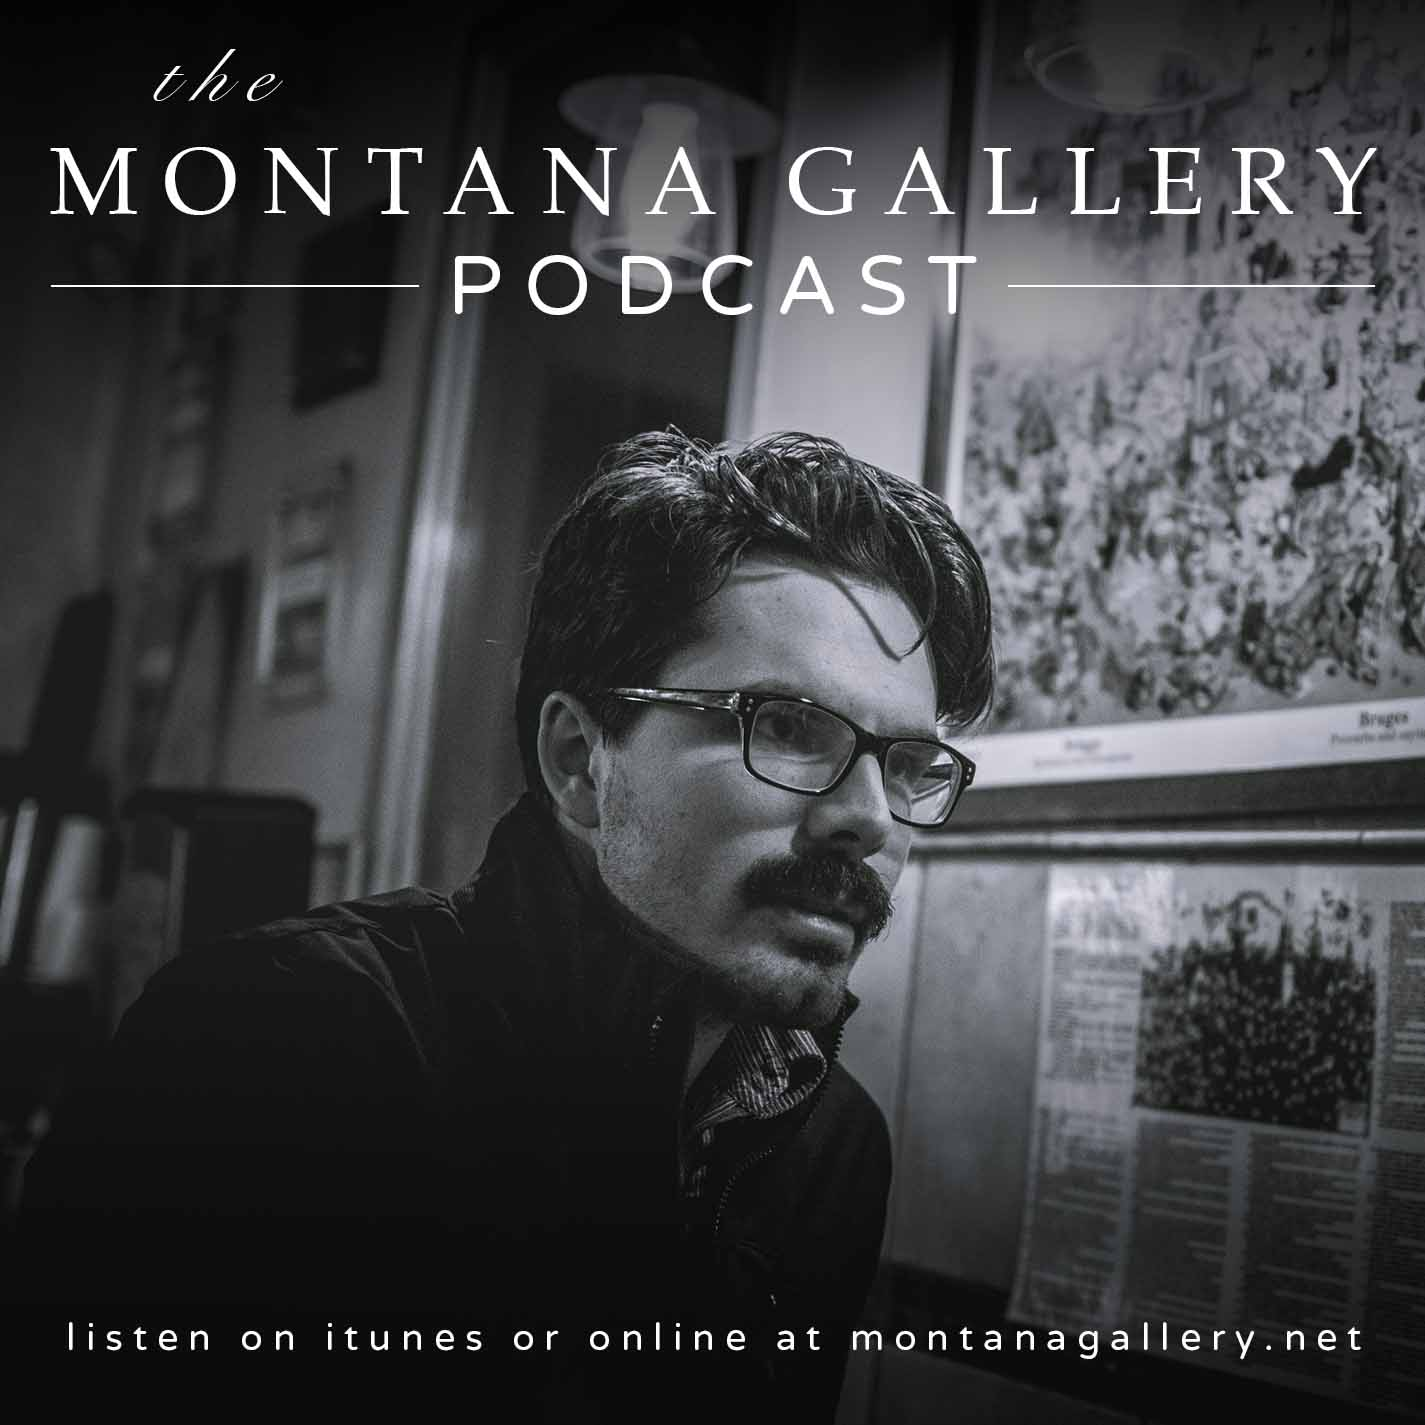 The Montana Gallery Podcast